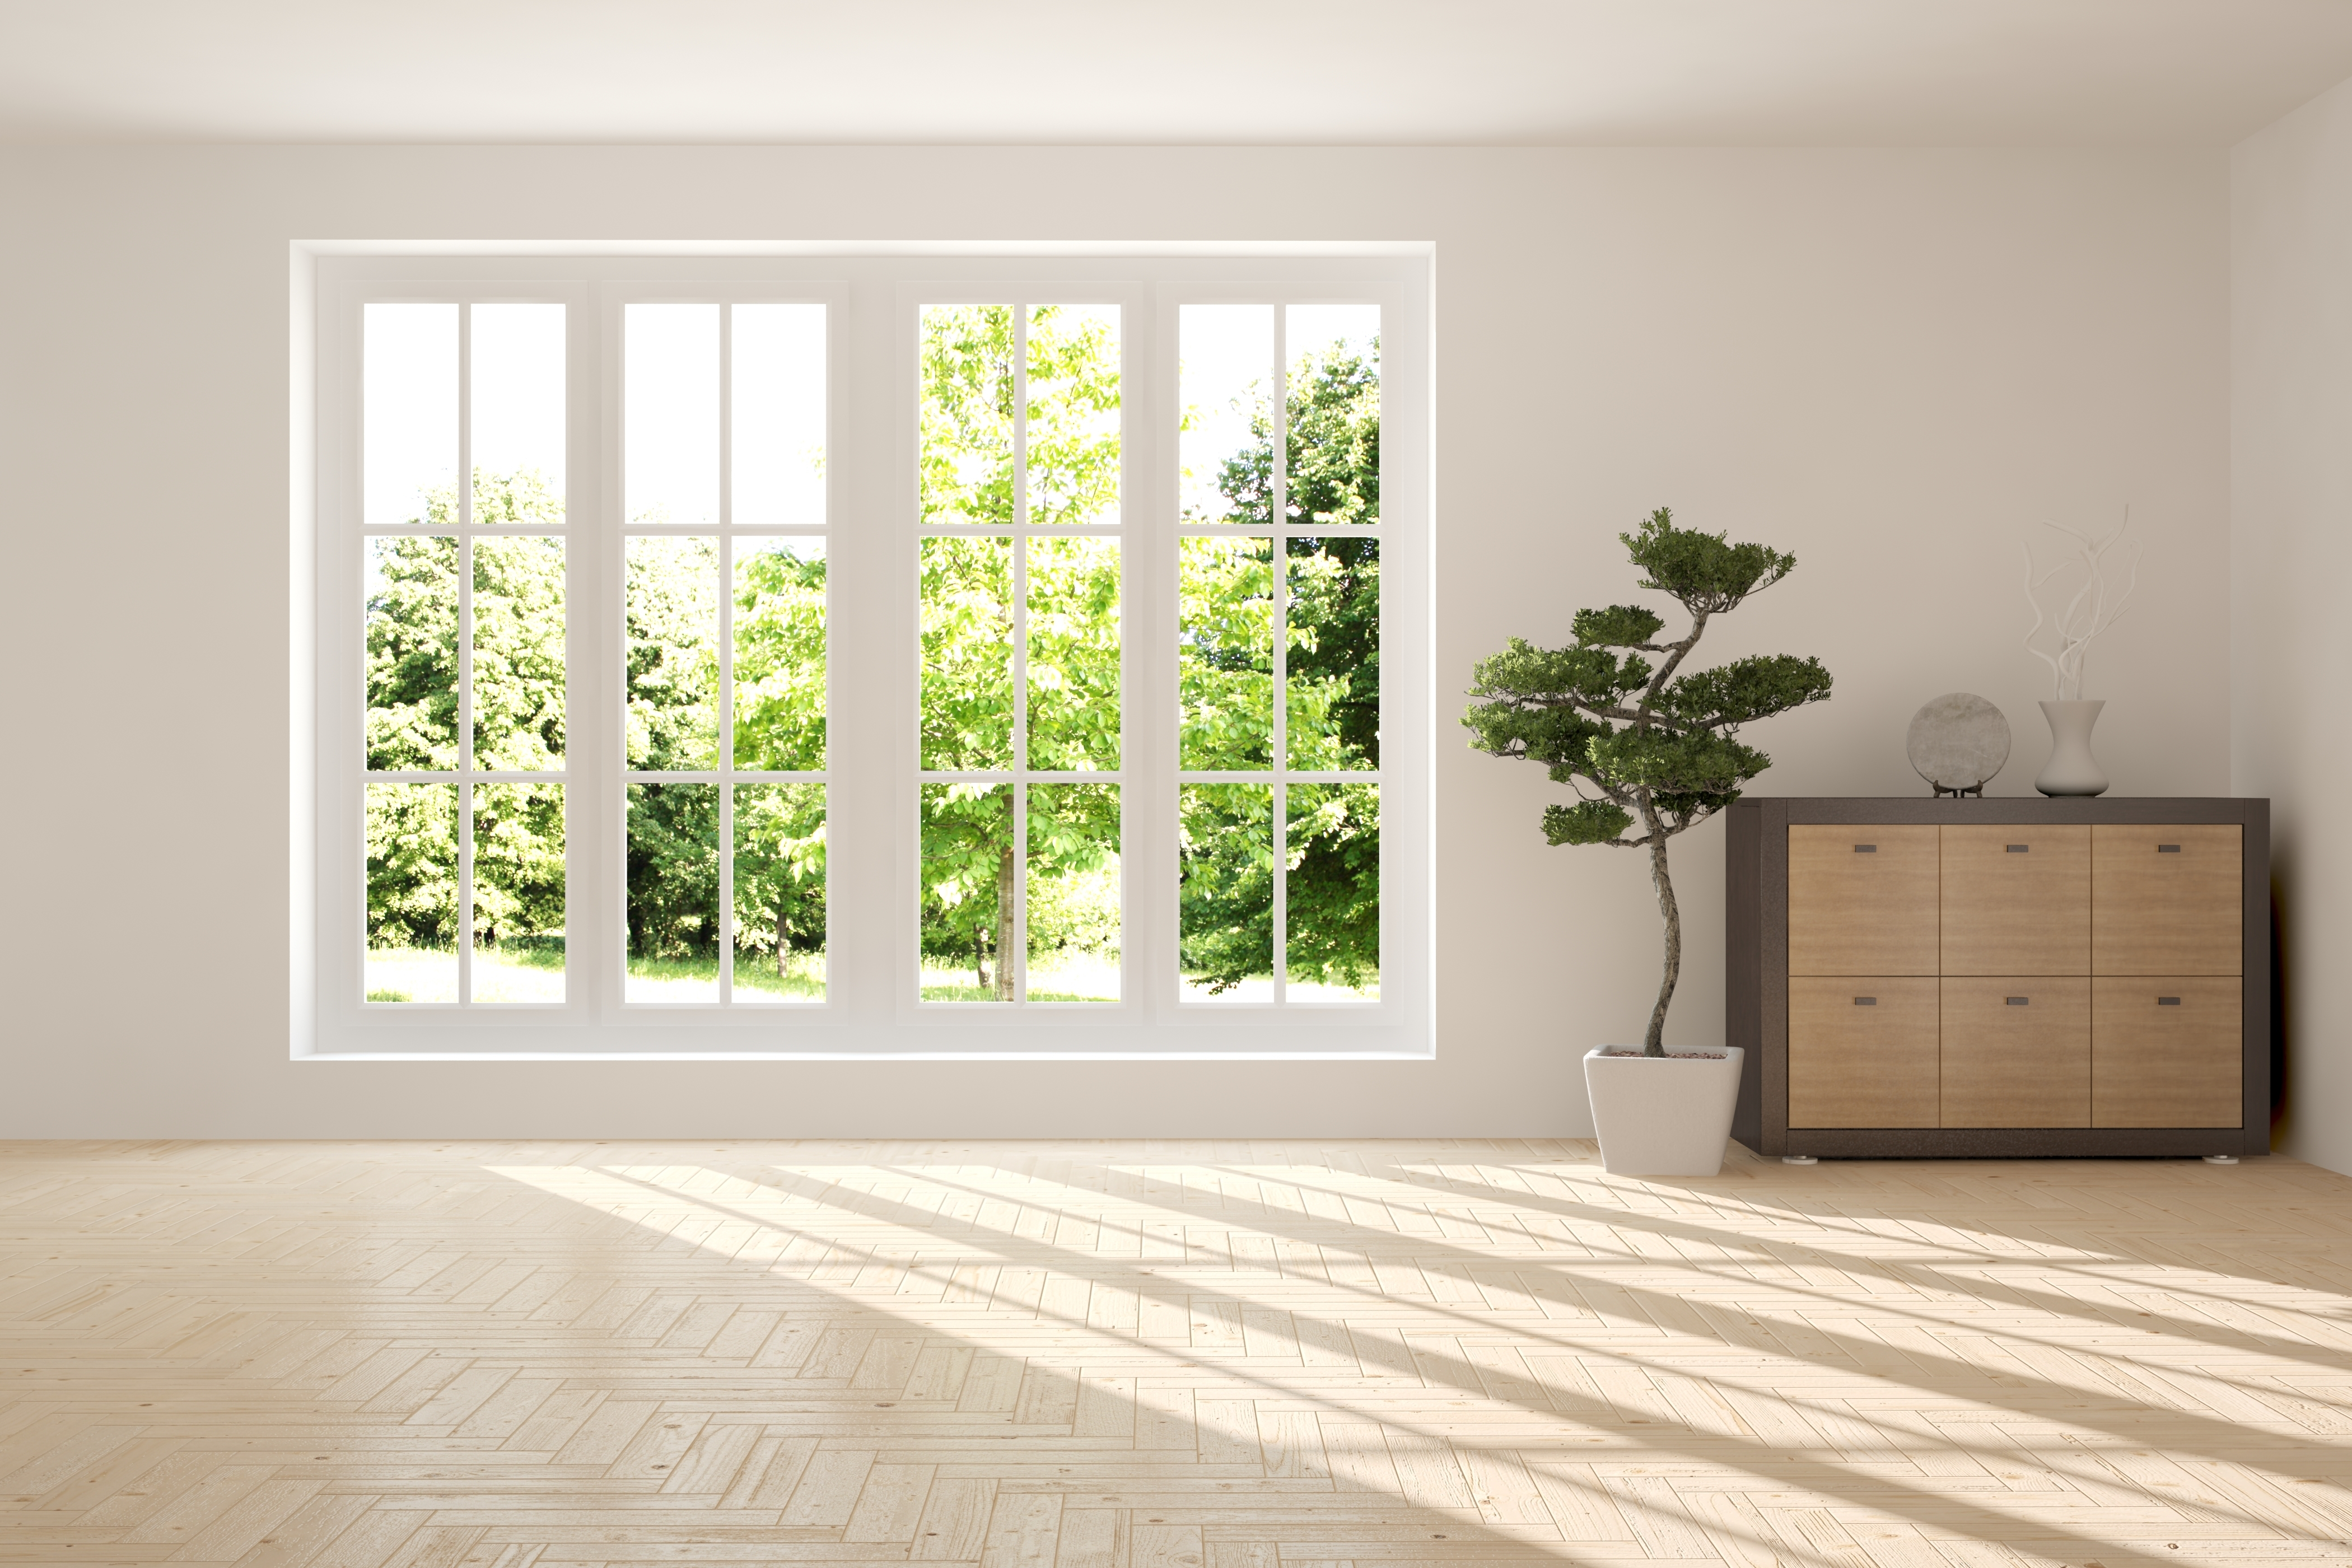 large window in empty room with wood floors